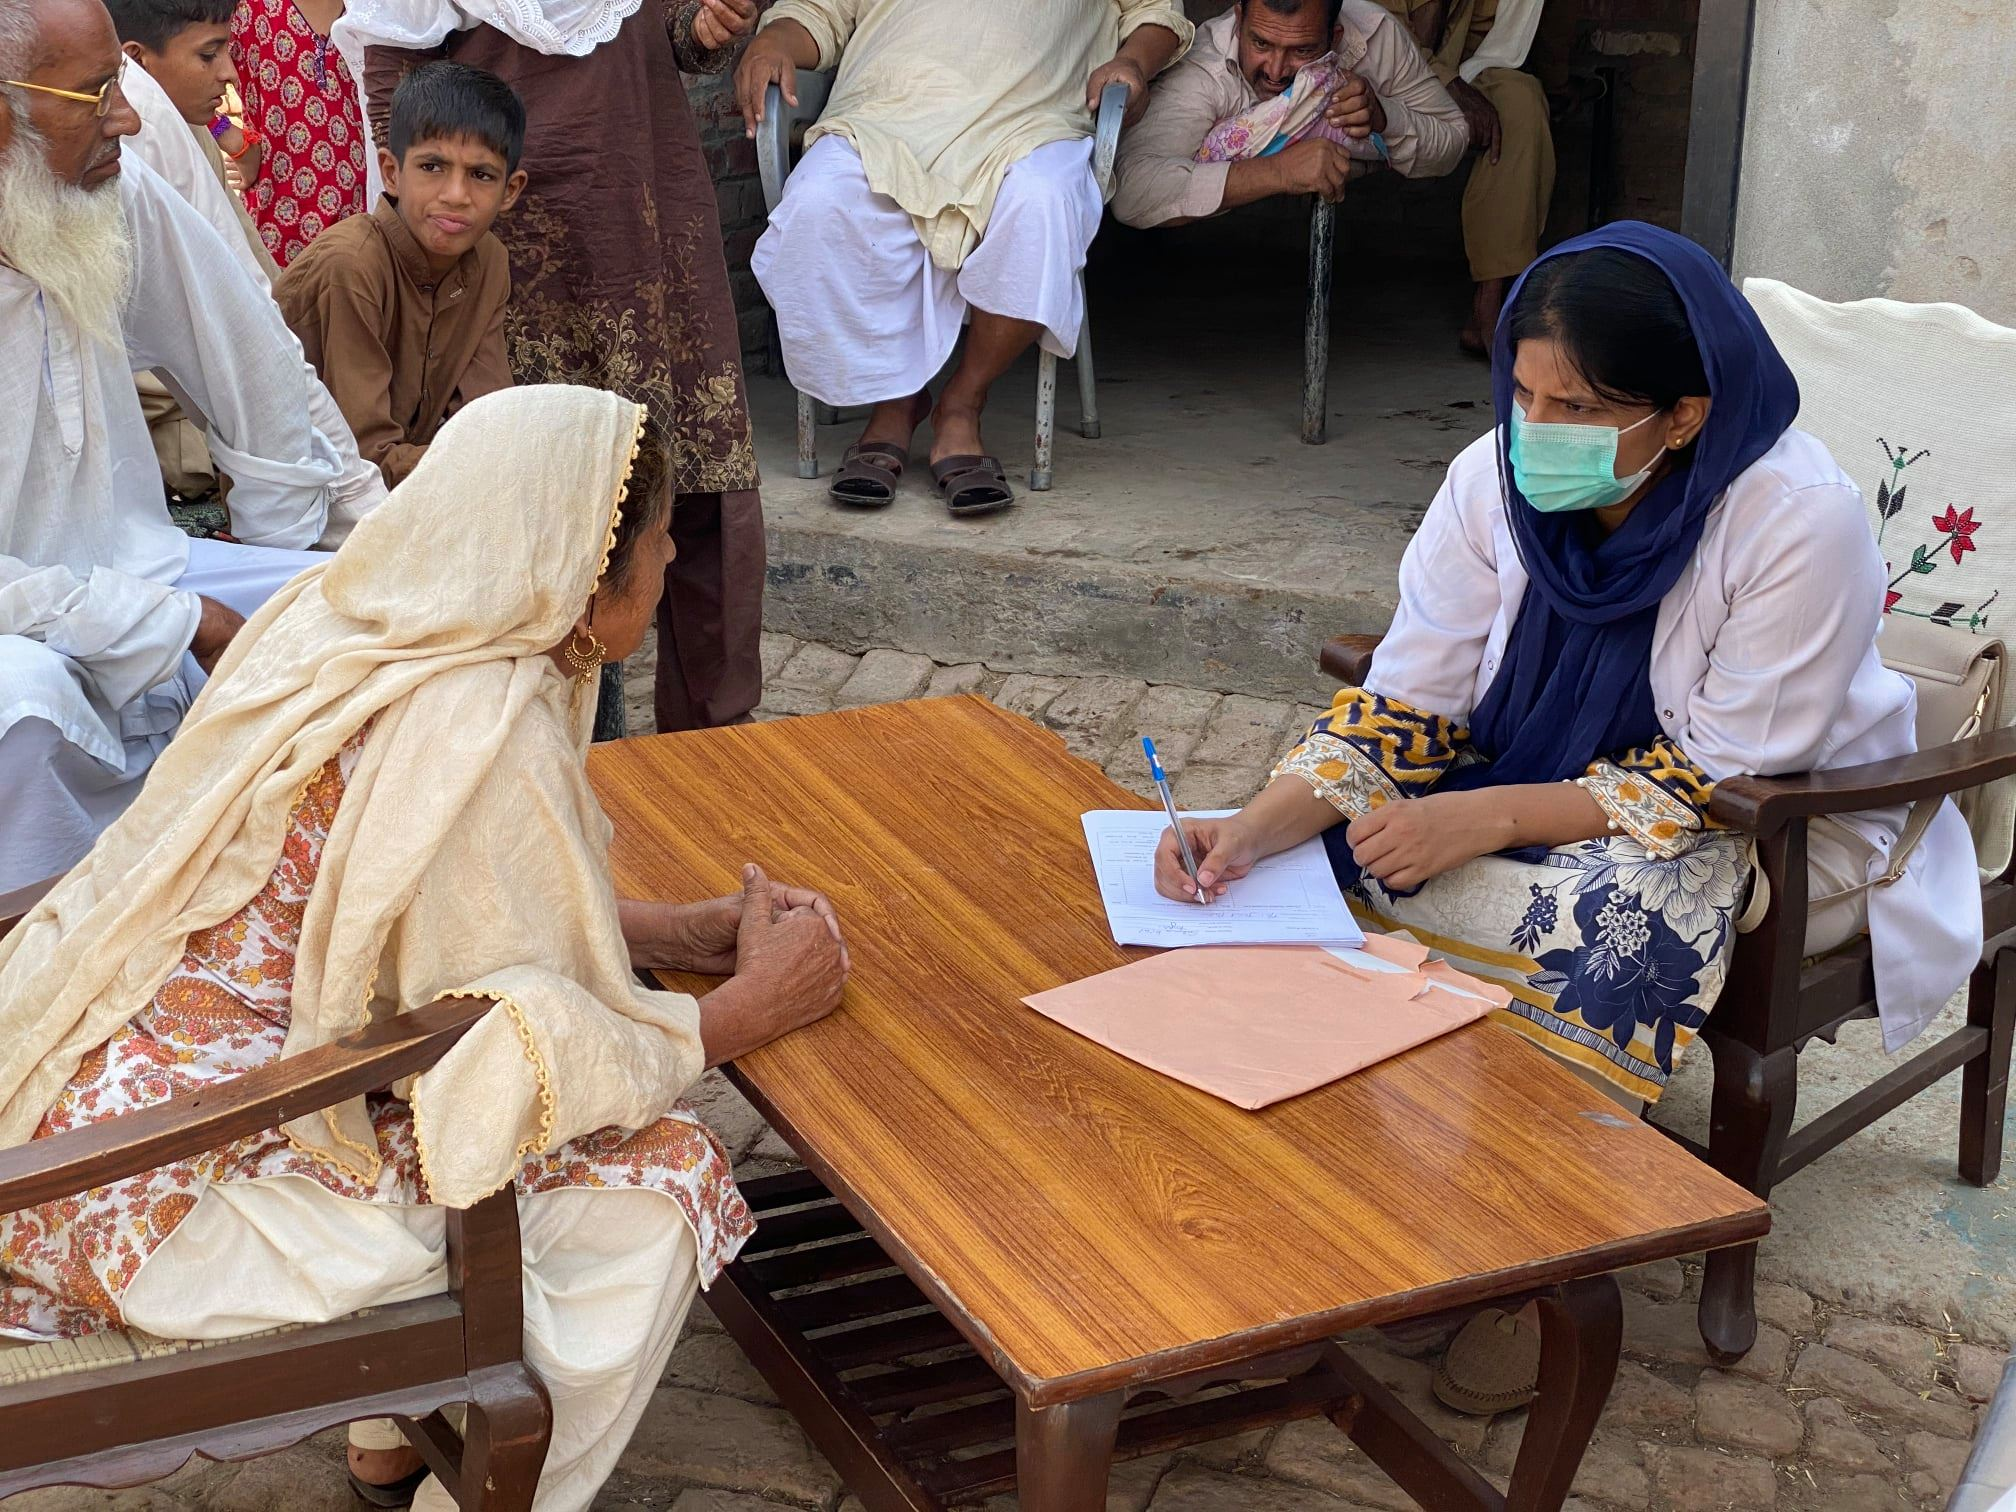 FFPS' Free Mobile Hospitals visit the rural areas and villages in Pakistan